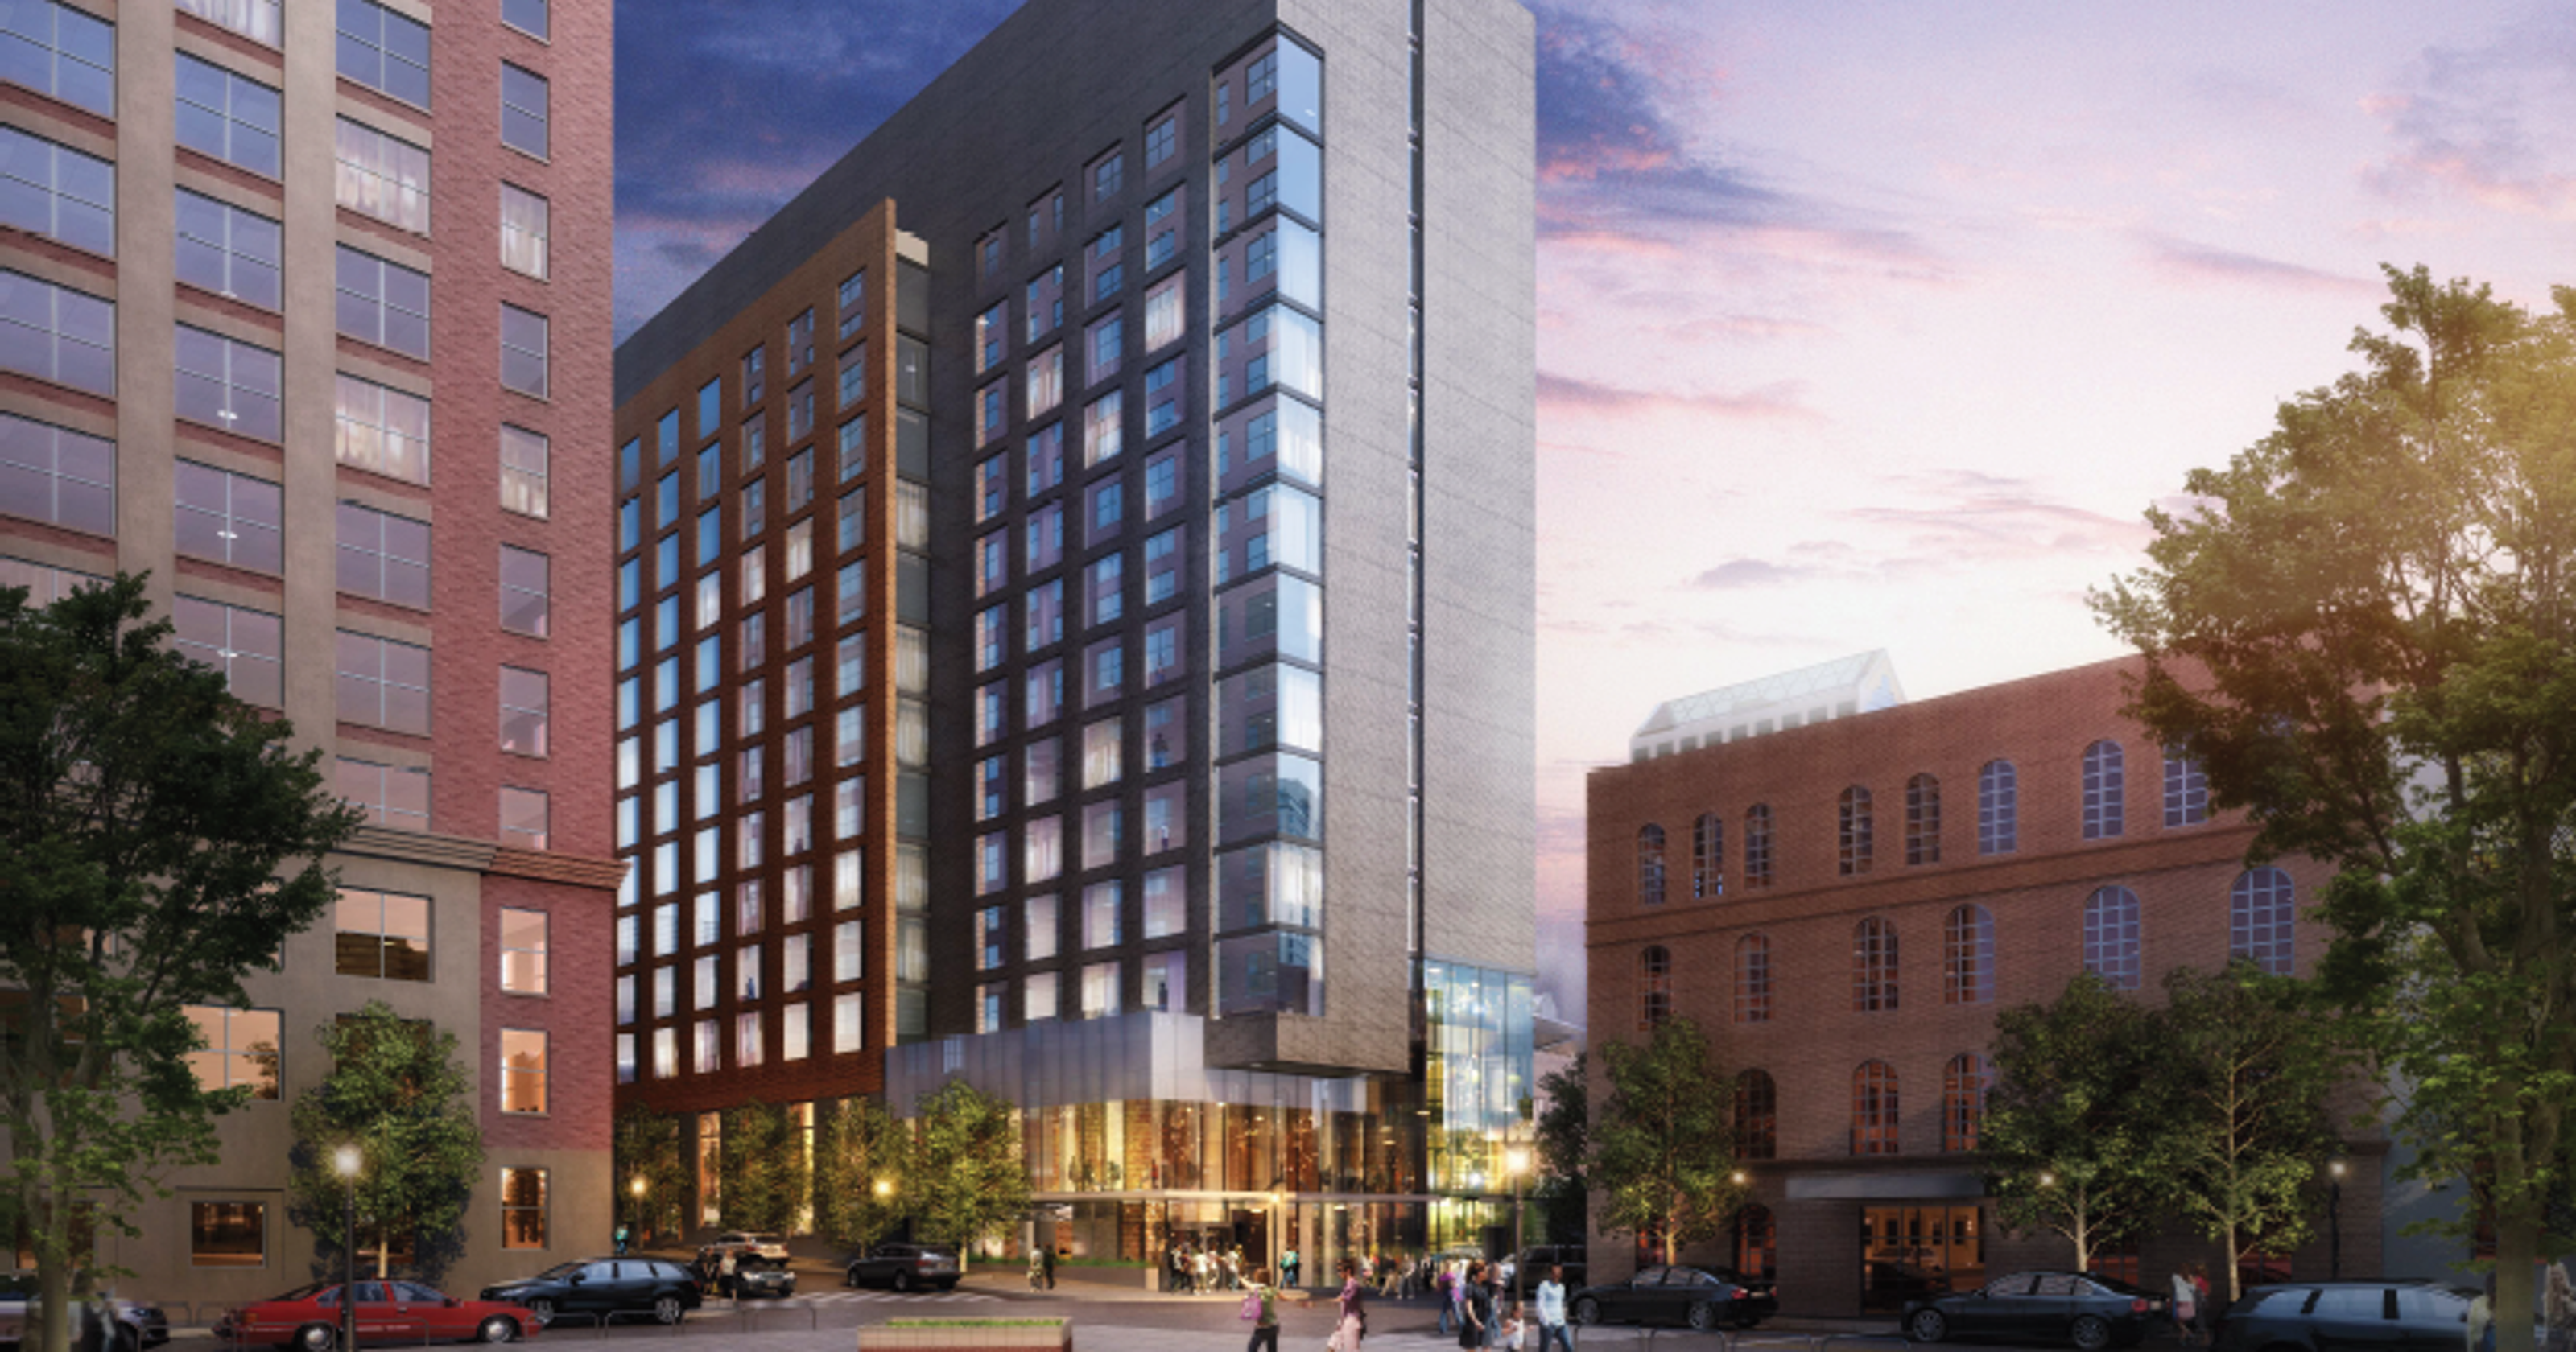 Here S What The New 90m Dual Hotel Project On Whiskey Row Will Look Like